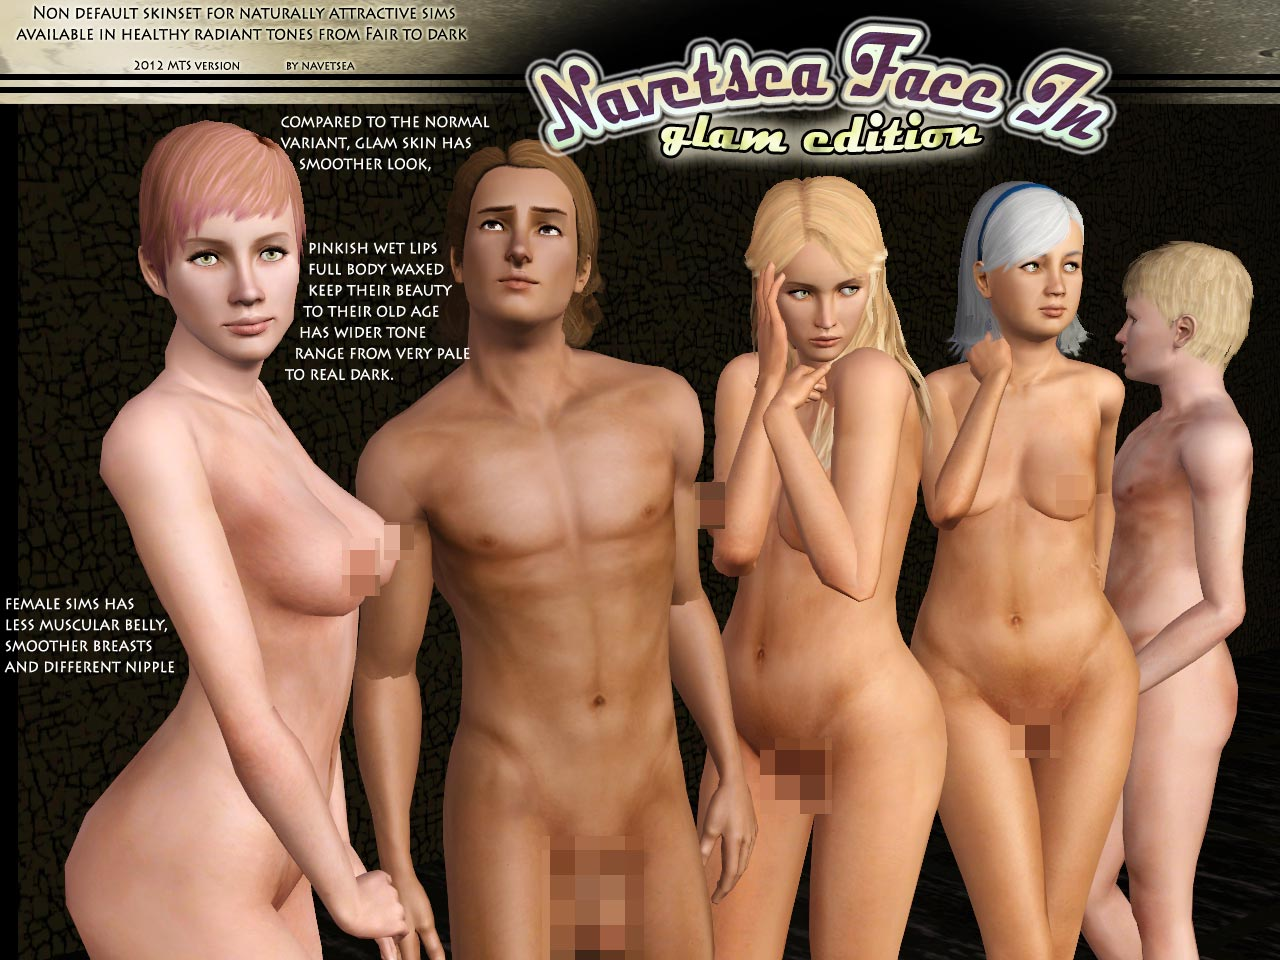 The sims 2 nude skins download xxx movies